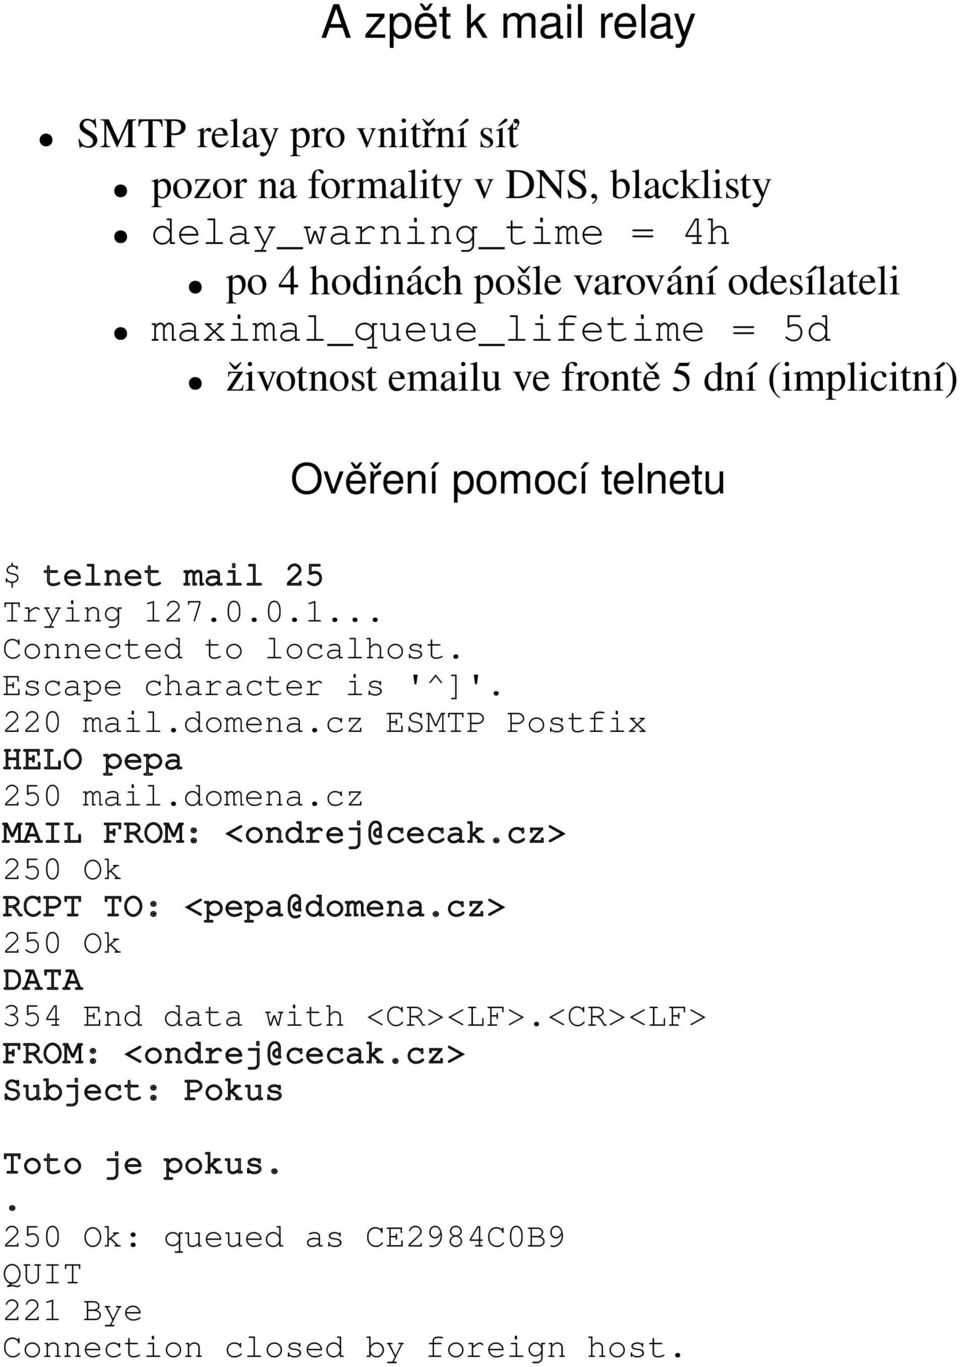 Escape character is '^]'. 220 mail.domena.cz ESMTP Postfix HELO pepa 250 mail.domena.cz MAIL FROM: <ondrej@cecak.cz> 250 Ok RCPT TO: <pepa@domena.